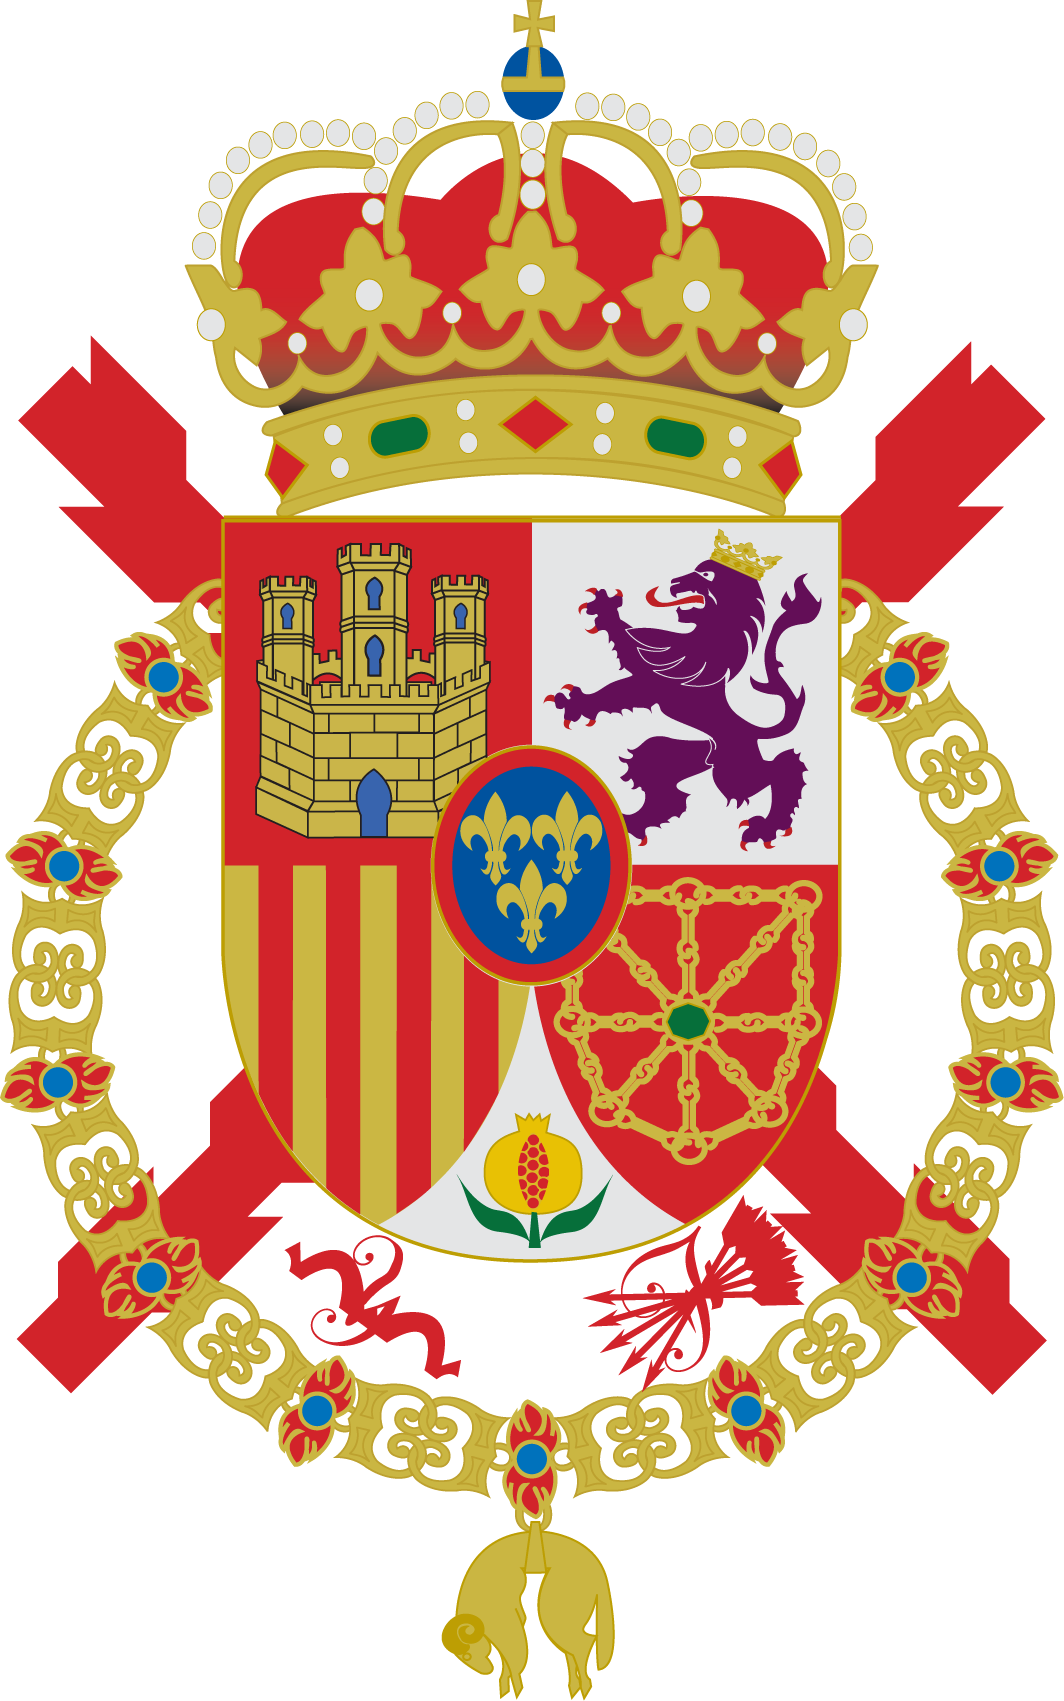 The Coat of Arms of the King of Spain